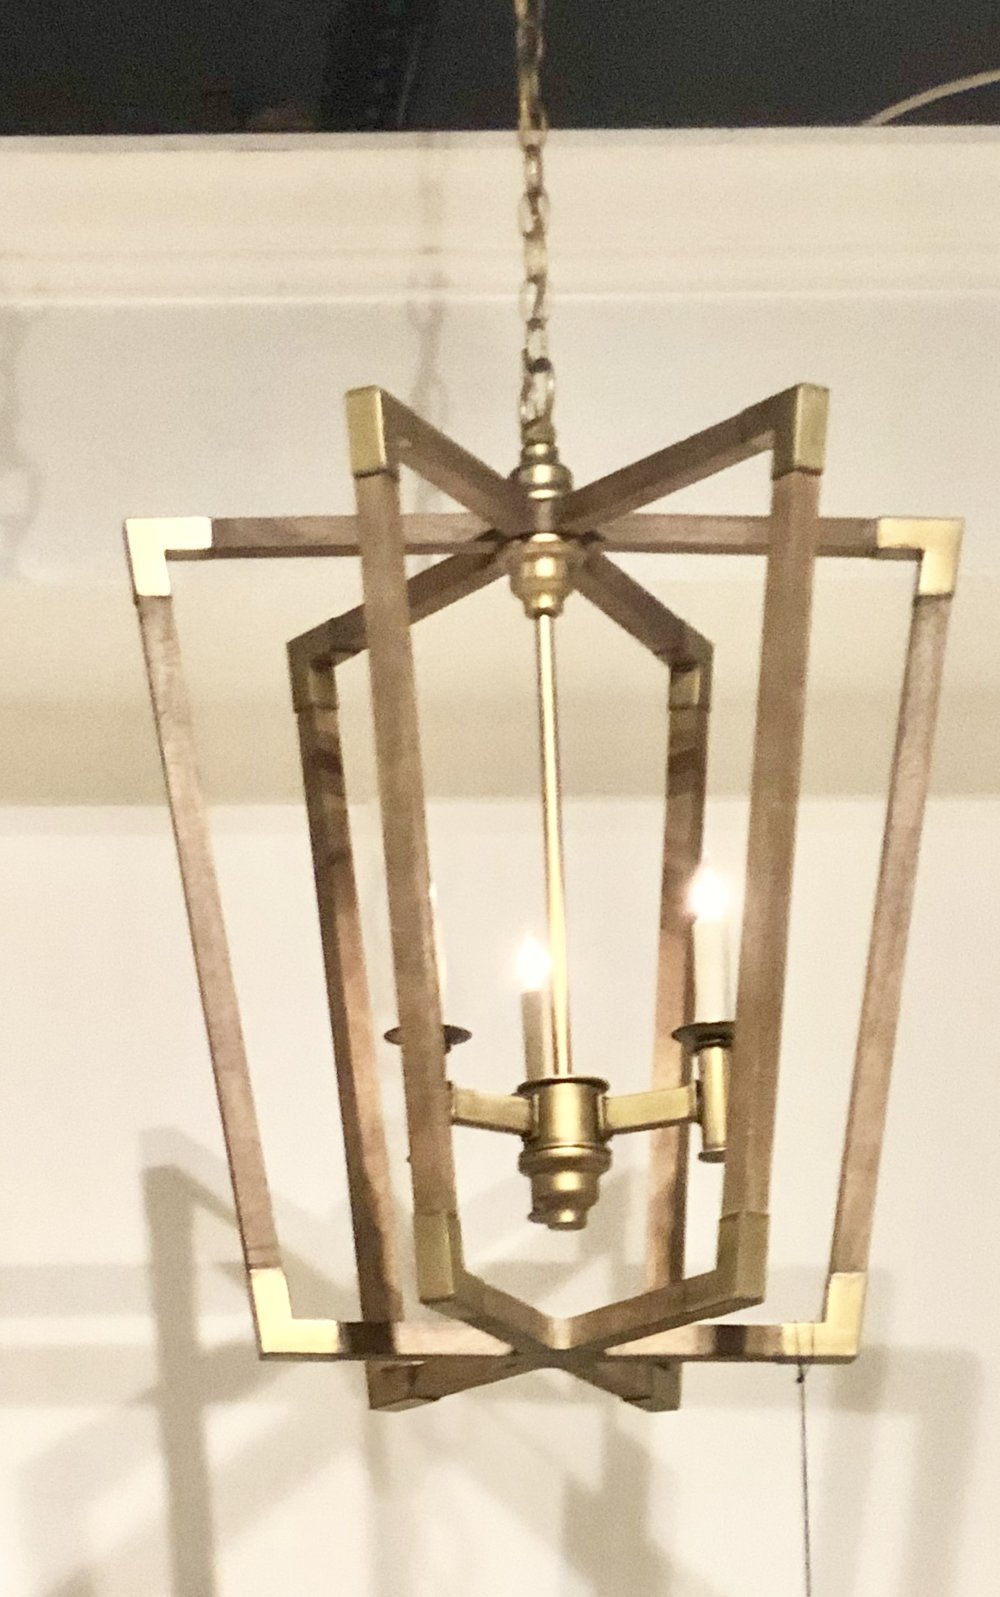 The light, washed wood capped with brass ends.